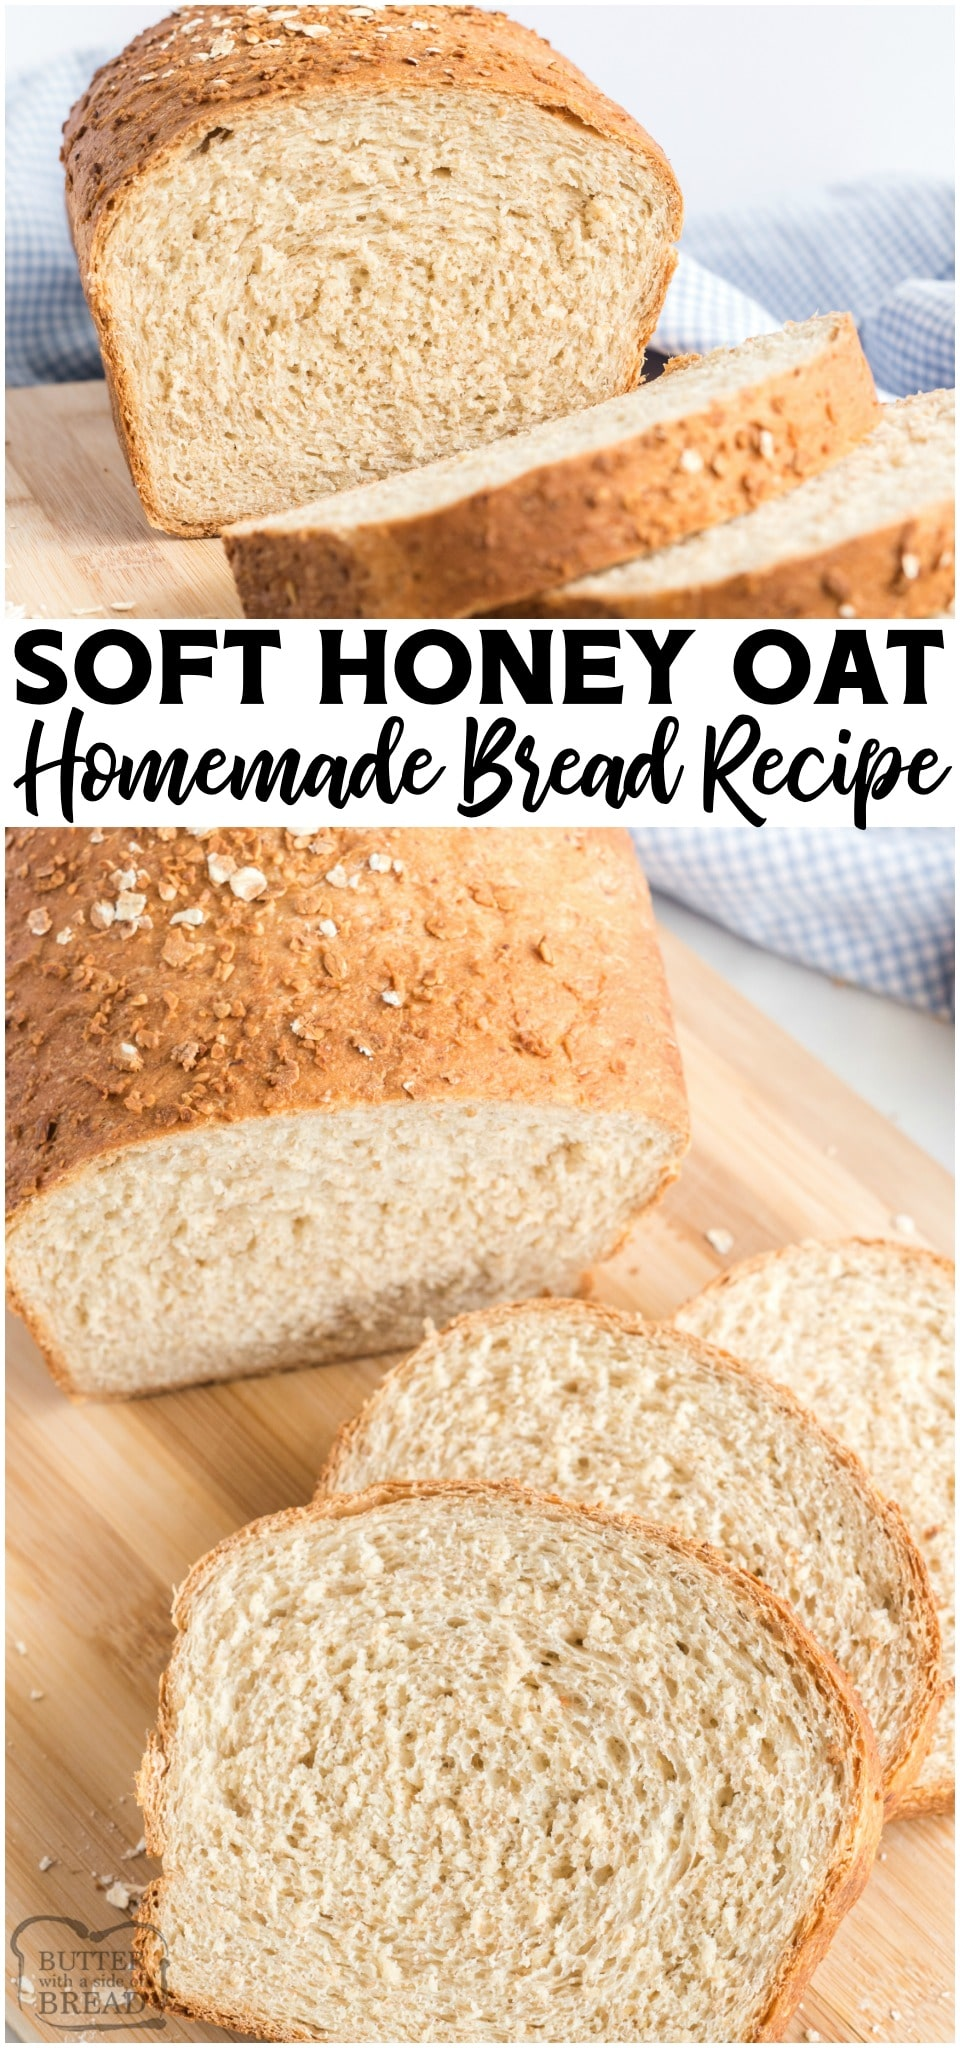 Honey Oat Bread recipe made with part whole wheat flour, honey, milk and oats. It's one of my favorite homemade bread recipes!